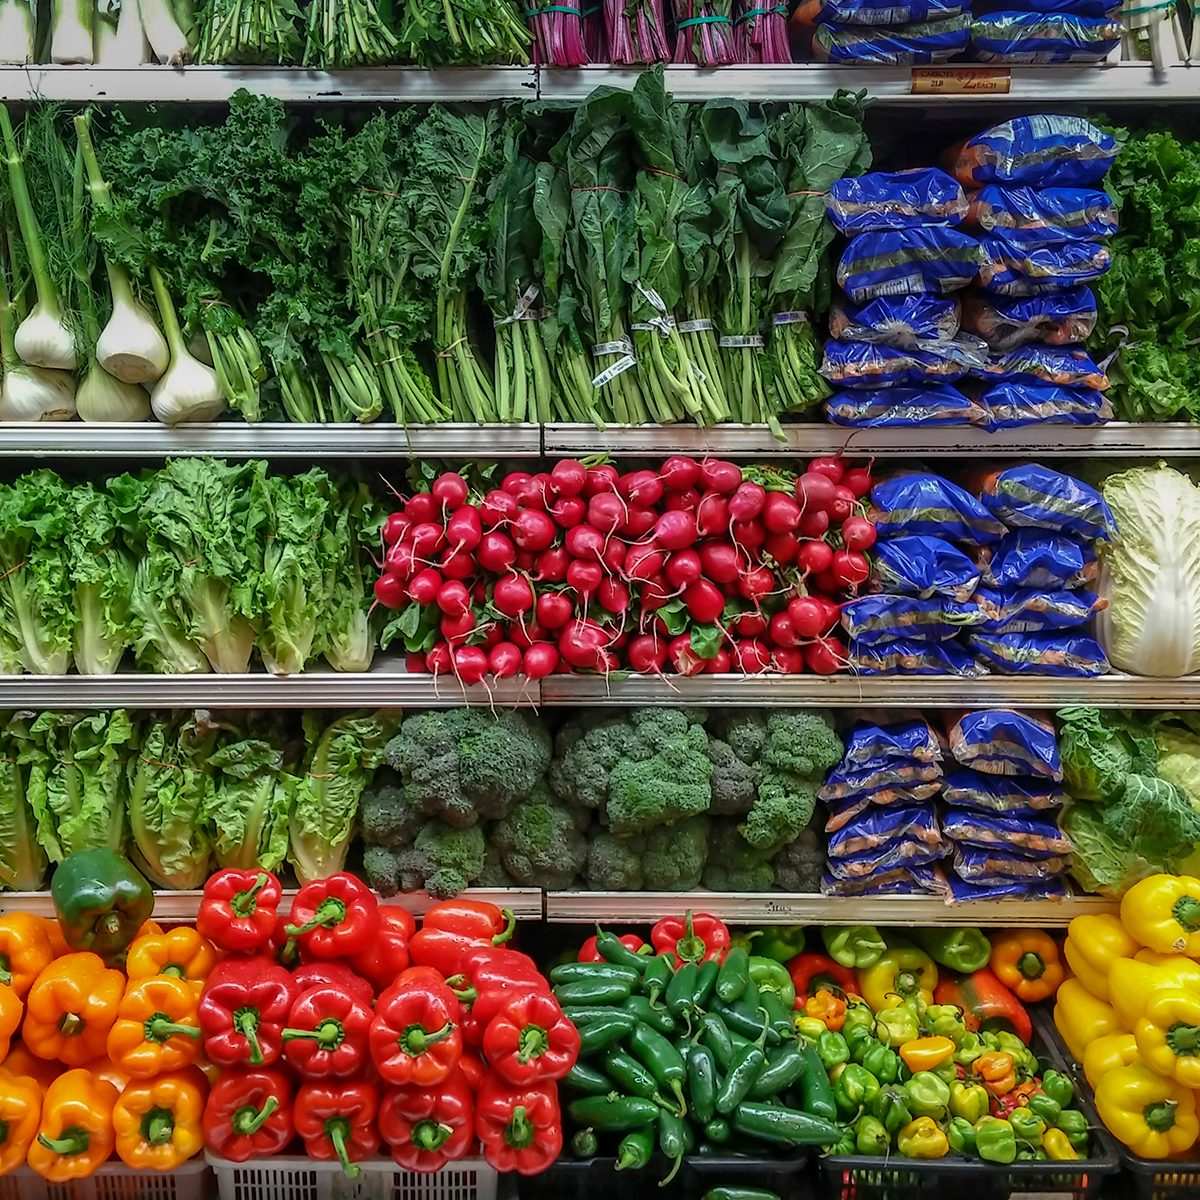 New York NY/USA-January 15, 2019 The produce department of a supermarket in New York; Shutterstock ID 1285396324; Job (TFH, TOH, RD, BNB, CWM, CM): TOH